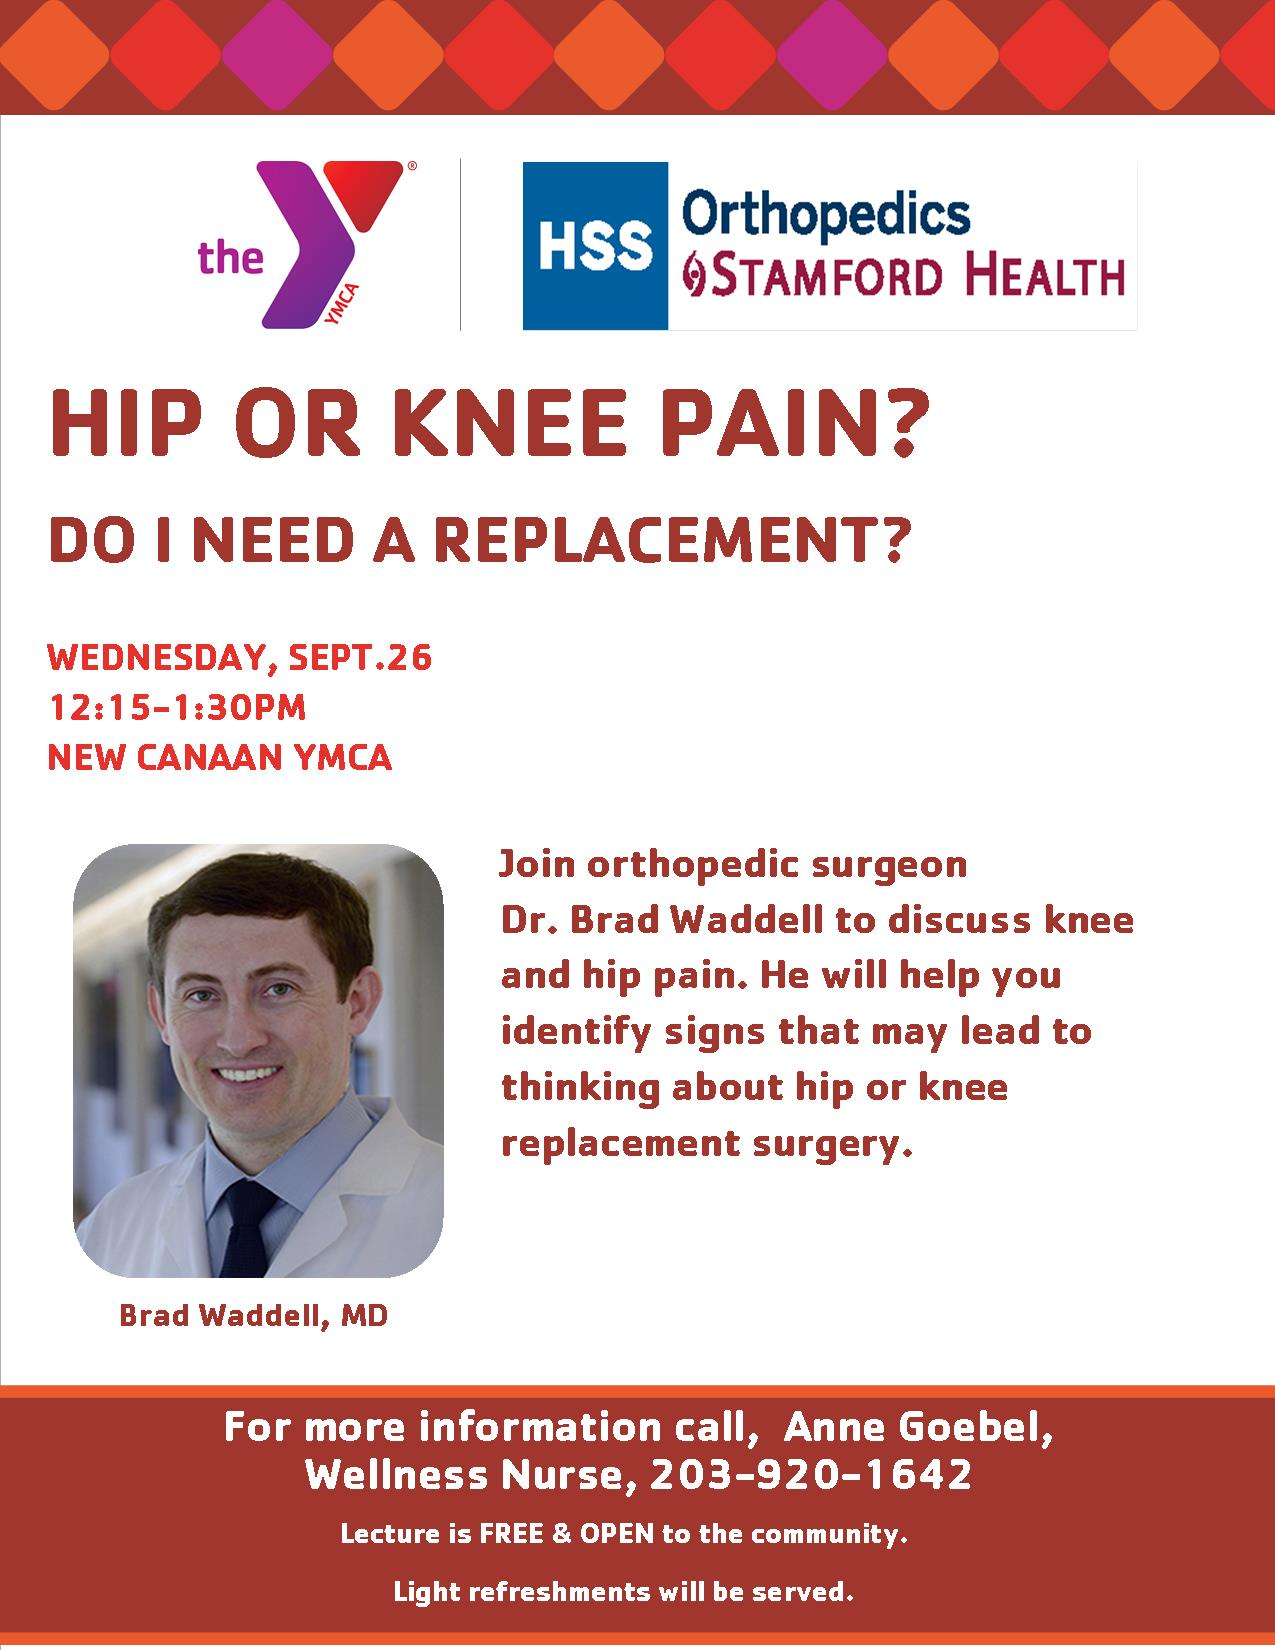 Hip or Knee Pain? @ New Canaan YMCA, Wagner Room